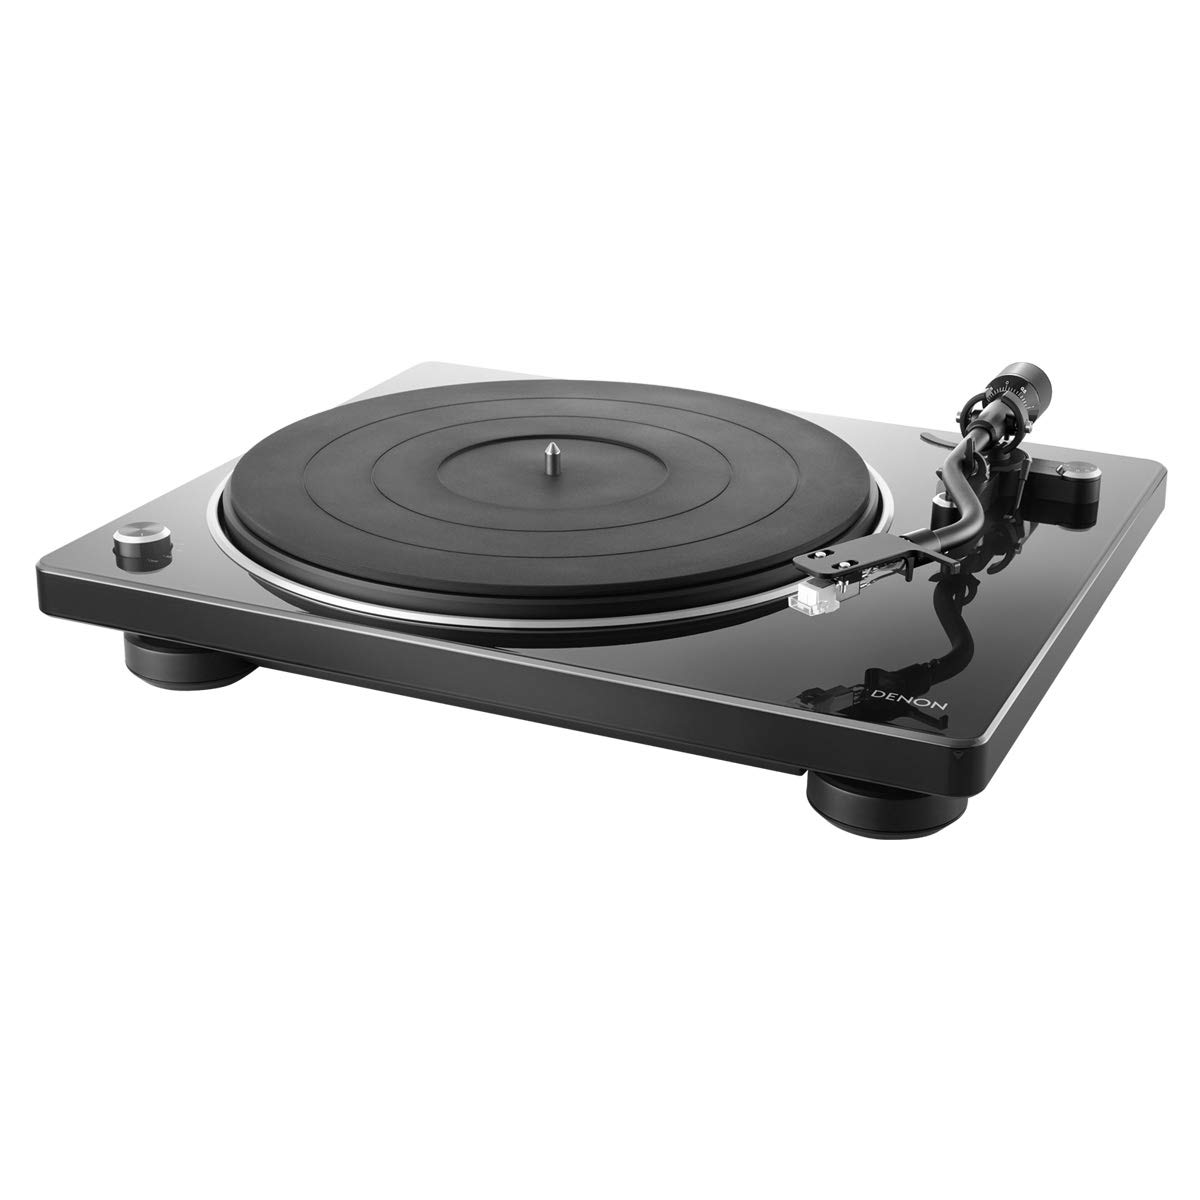 Denon DP-400 Semi-Automatic Analog Turntable with Speed Auto Sensor | Specially Designed Curved Tonearm | Supports 33 1/3. 45, 78 RPM (Vintage) Speeds | Modern Looks, Superior Audio DP400